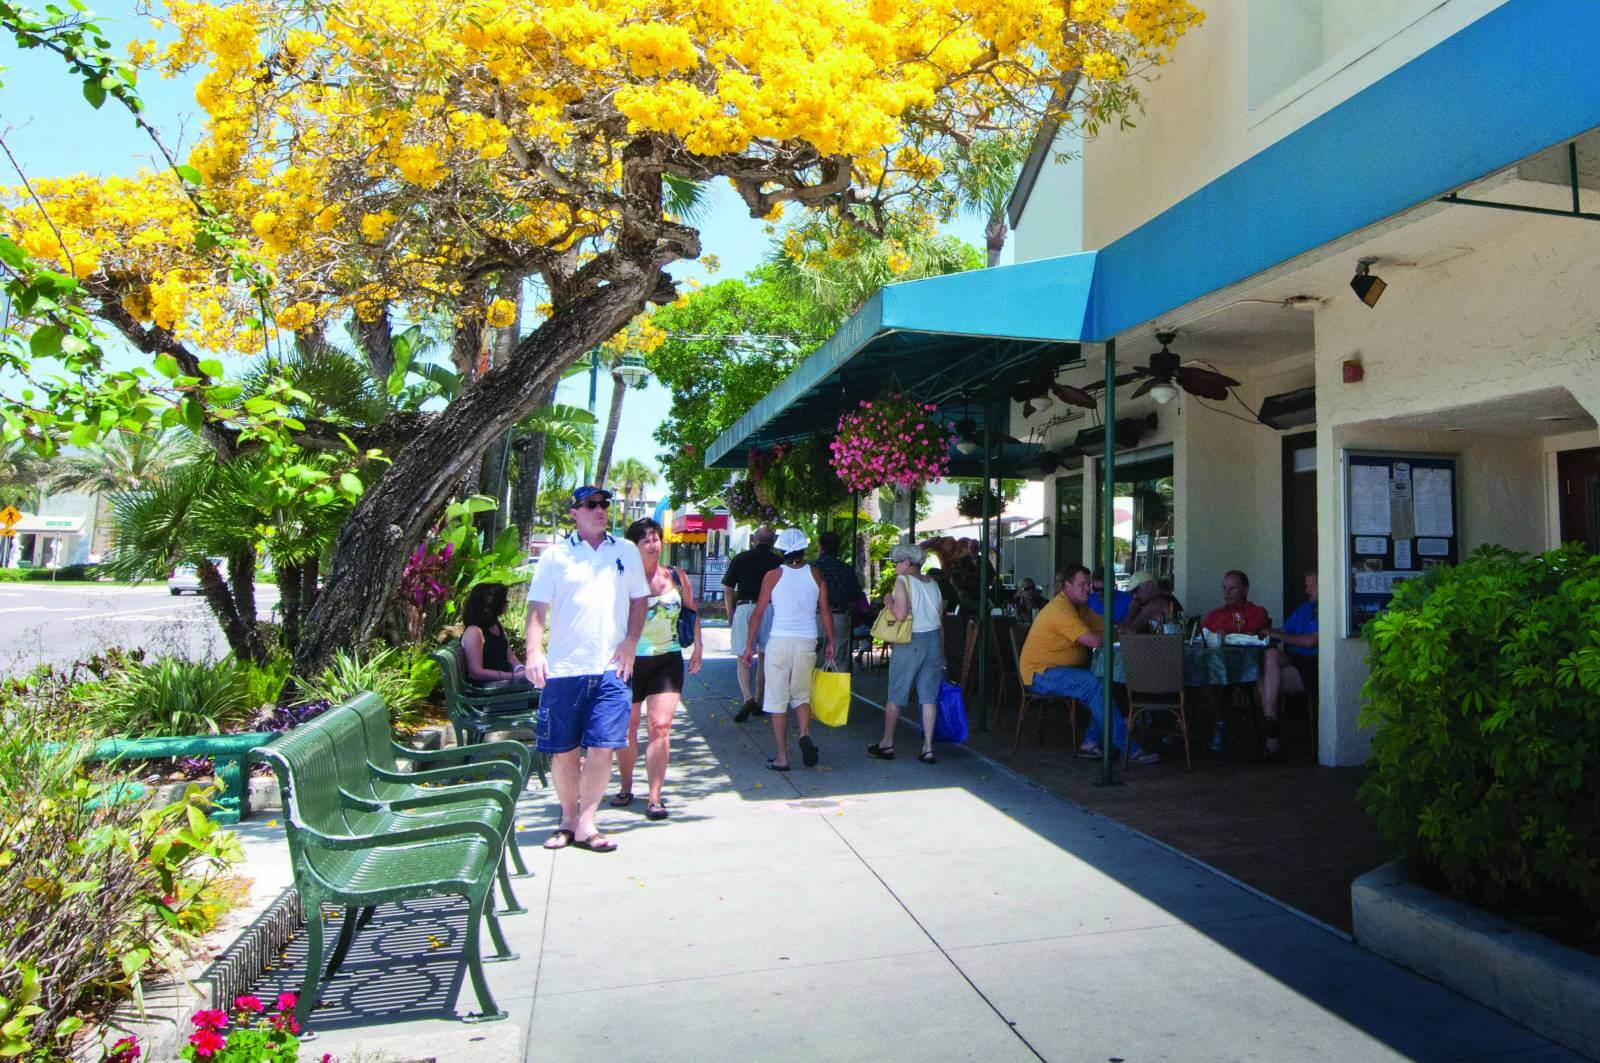 Shopping on St. Armands Circle in Lido Key Sarasota, Florida. MustDo.com